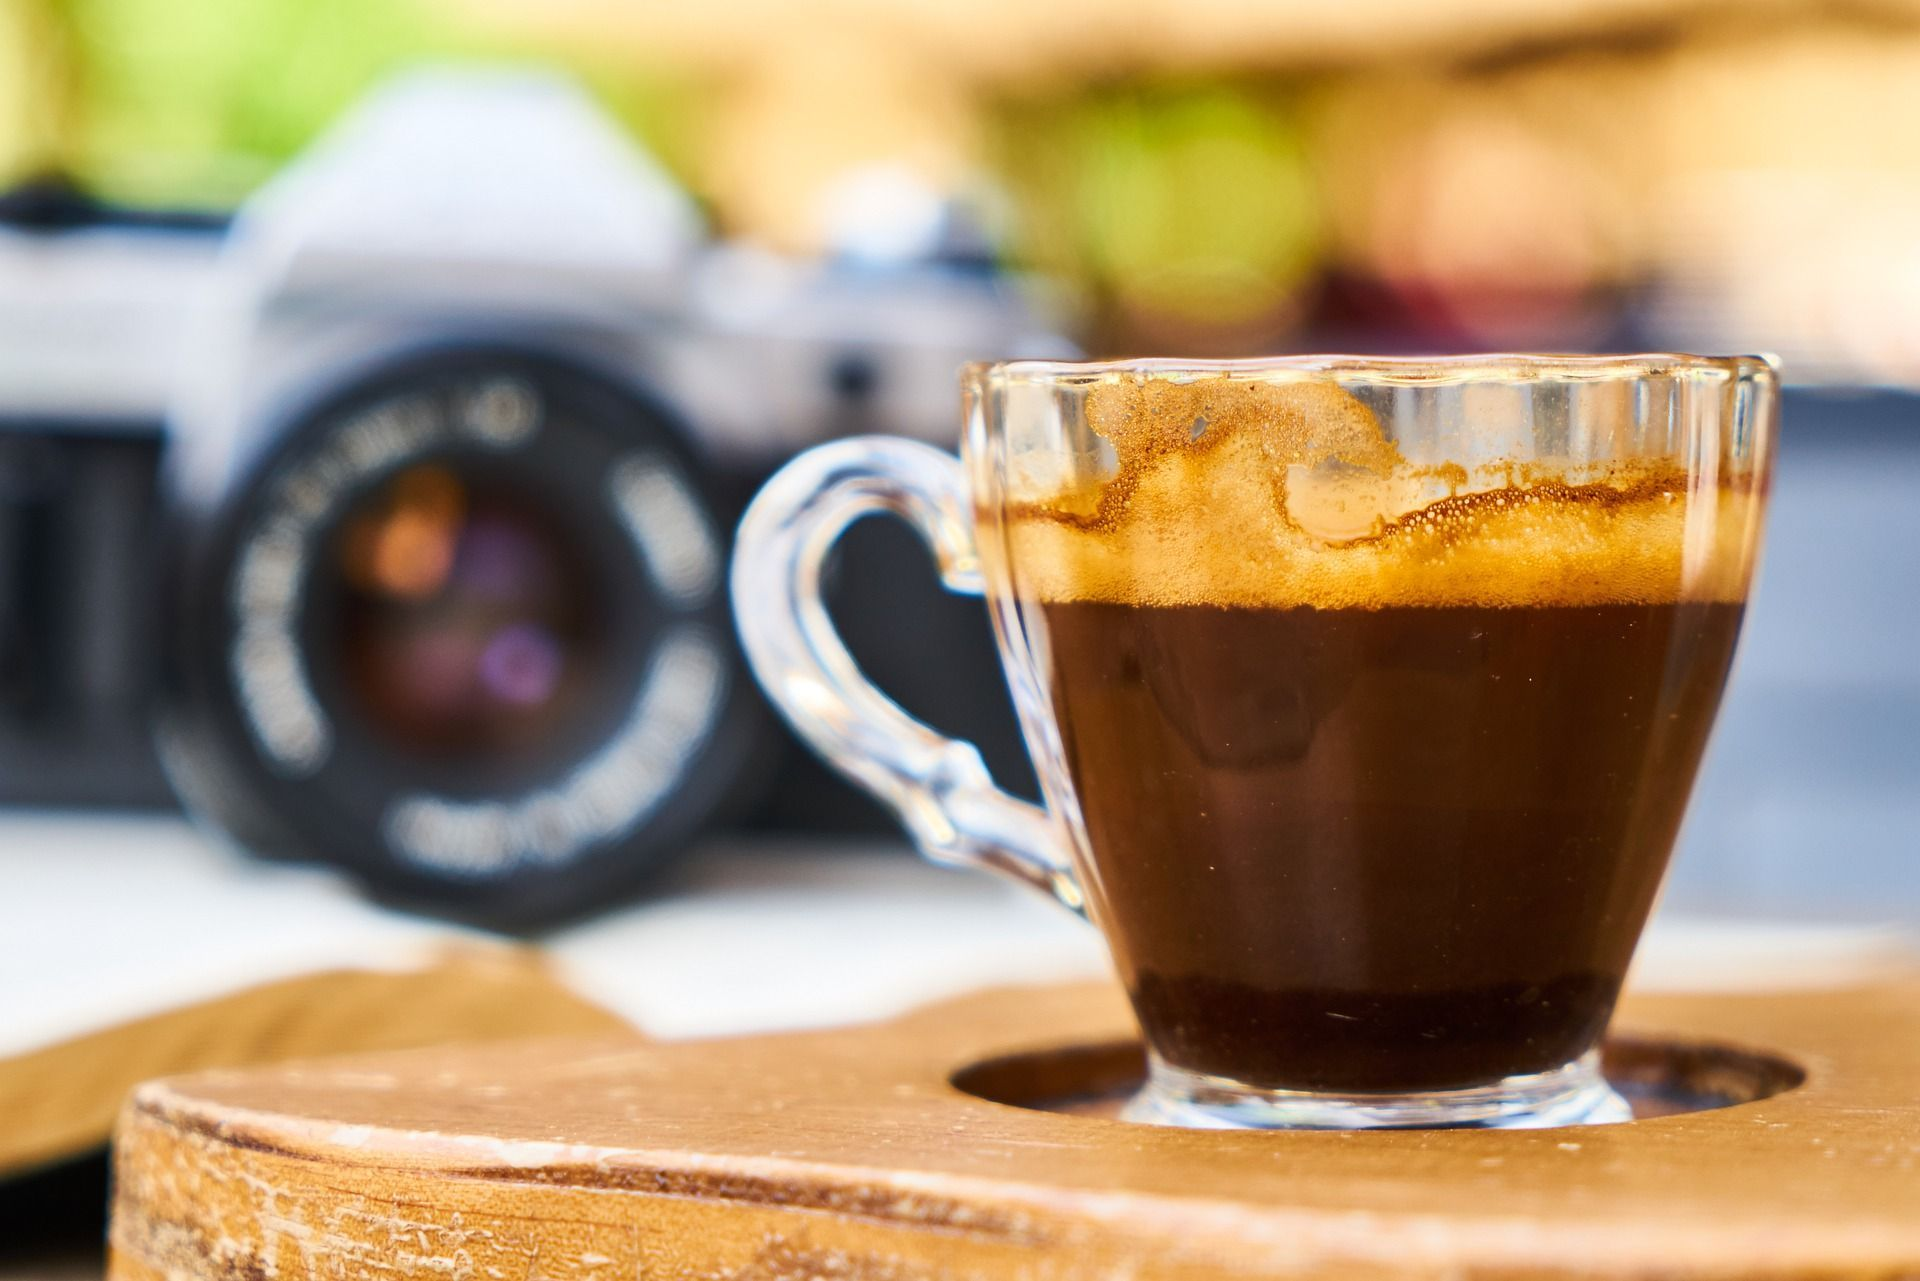 Much Needed After This Morning I Hope Your Coffee Is Strong Www Foodandtravelmagazine Com Coffee Es Gourmet Coffee Espresso Coffee Beans Online Coffee Shop